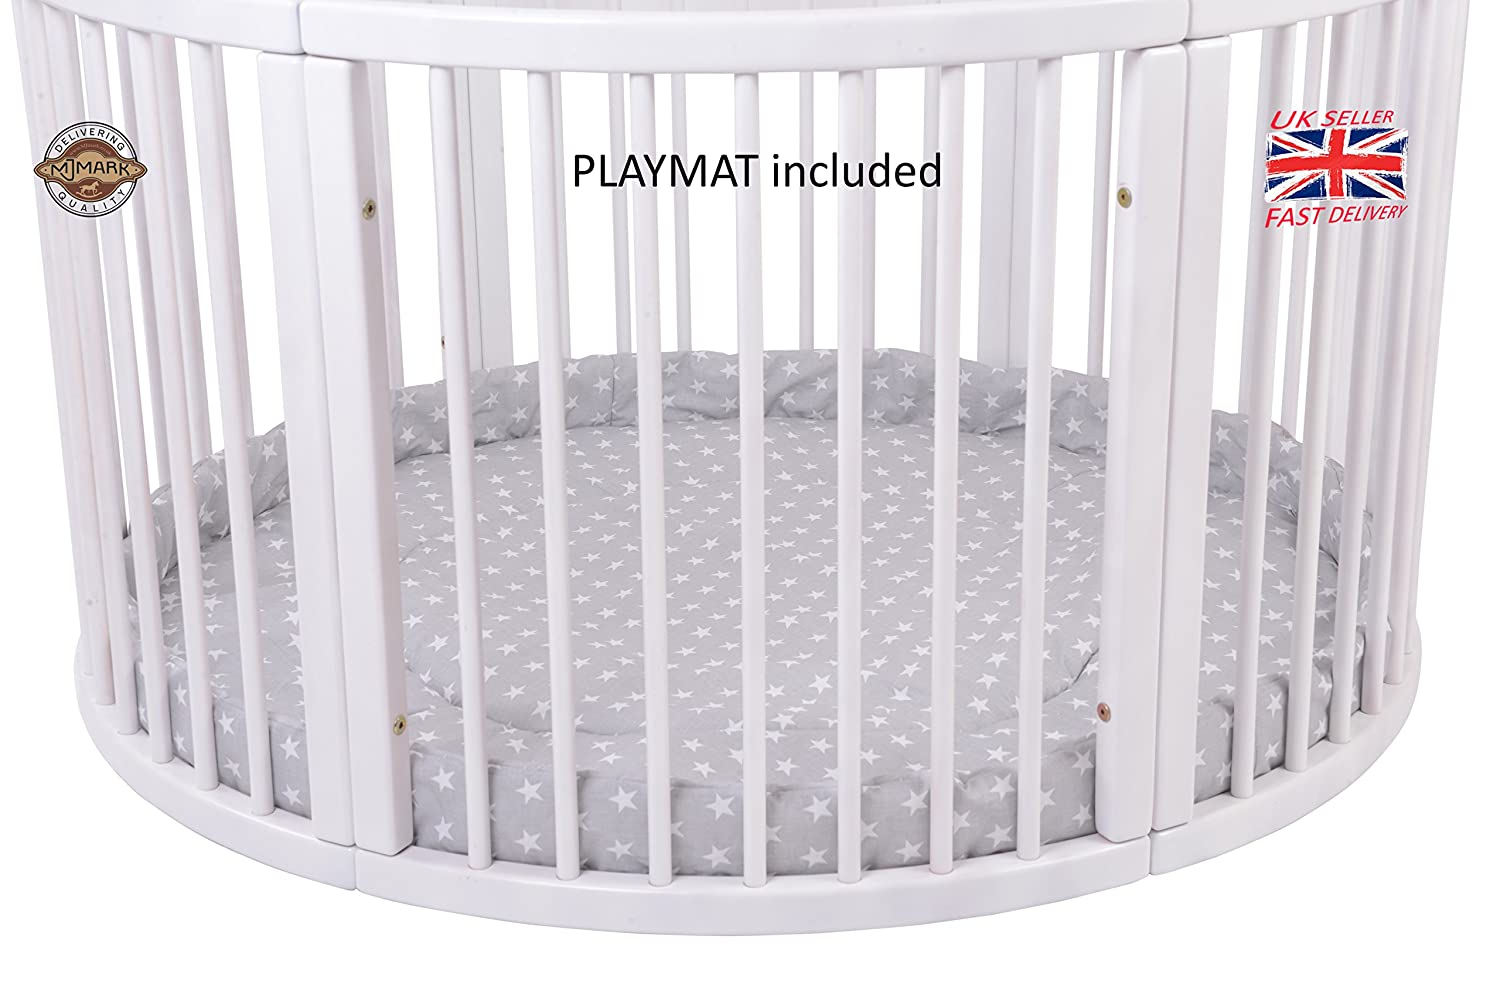 MJmark LARGE Round PLAYPEN ATLAS DUE with play-mat in Grey with white Stars SALE SALE VERY LARGE PLAYPEN